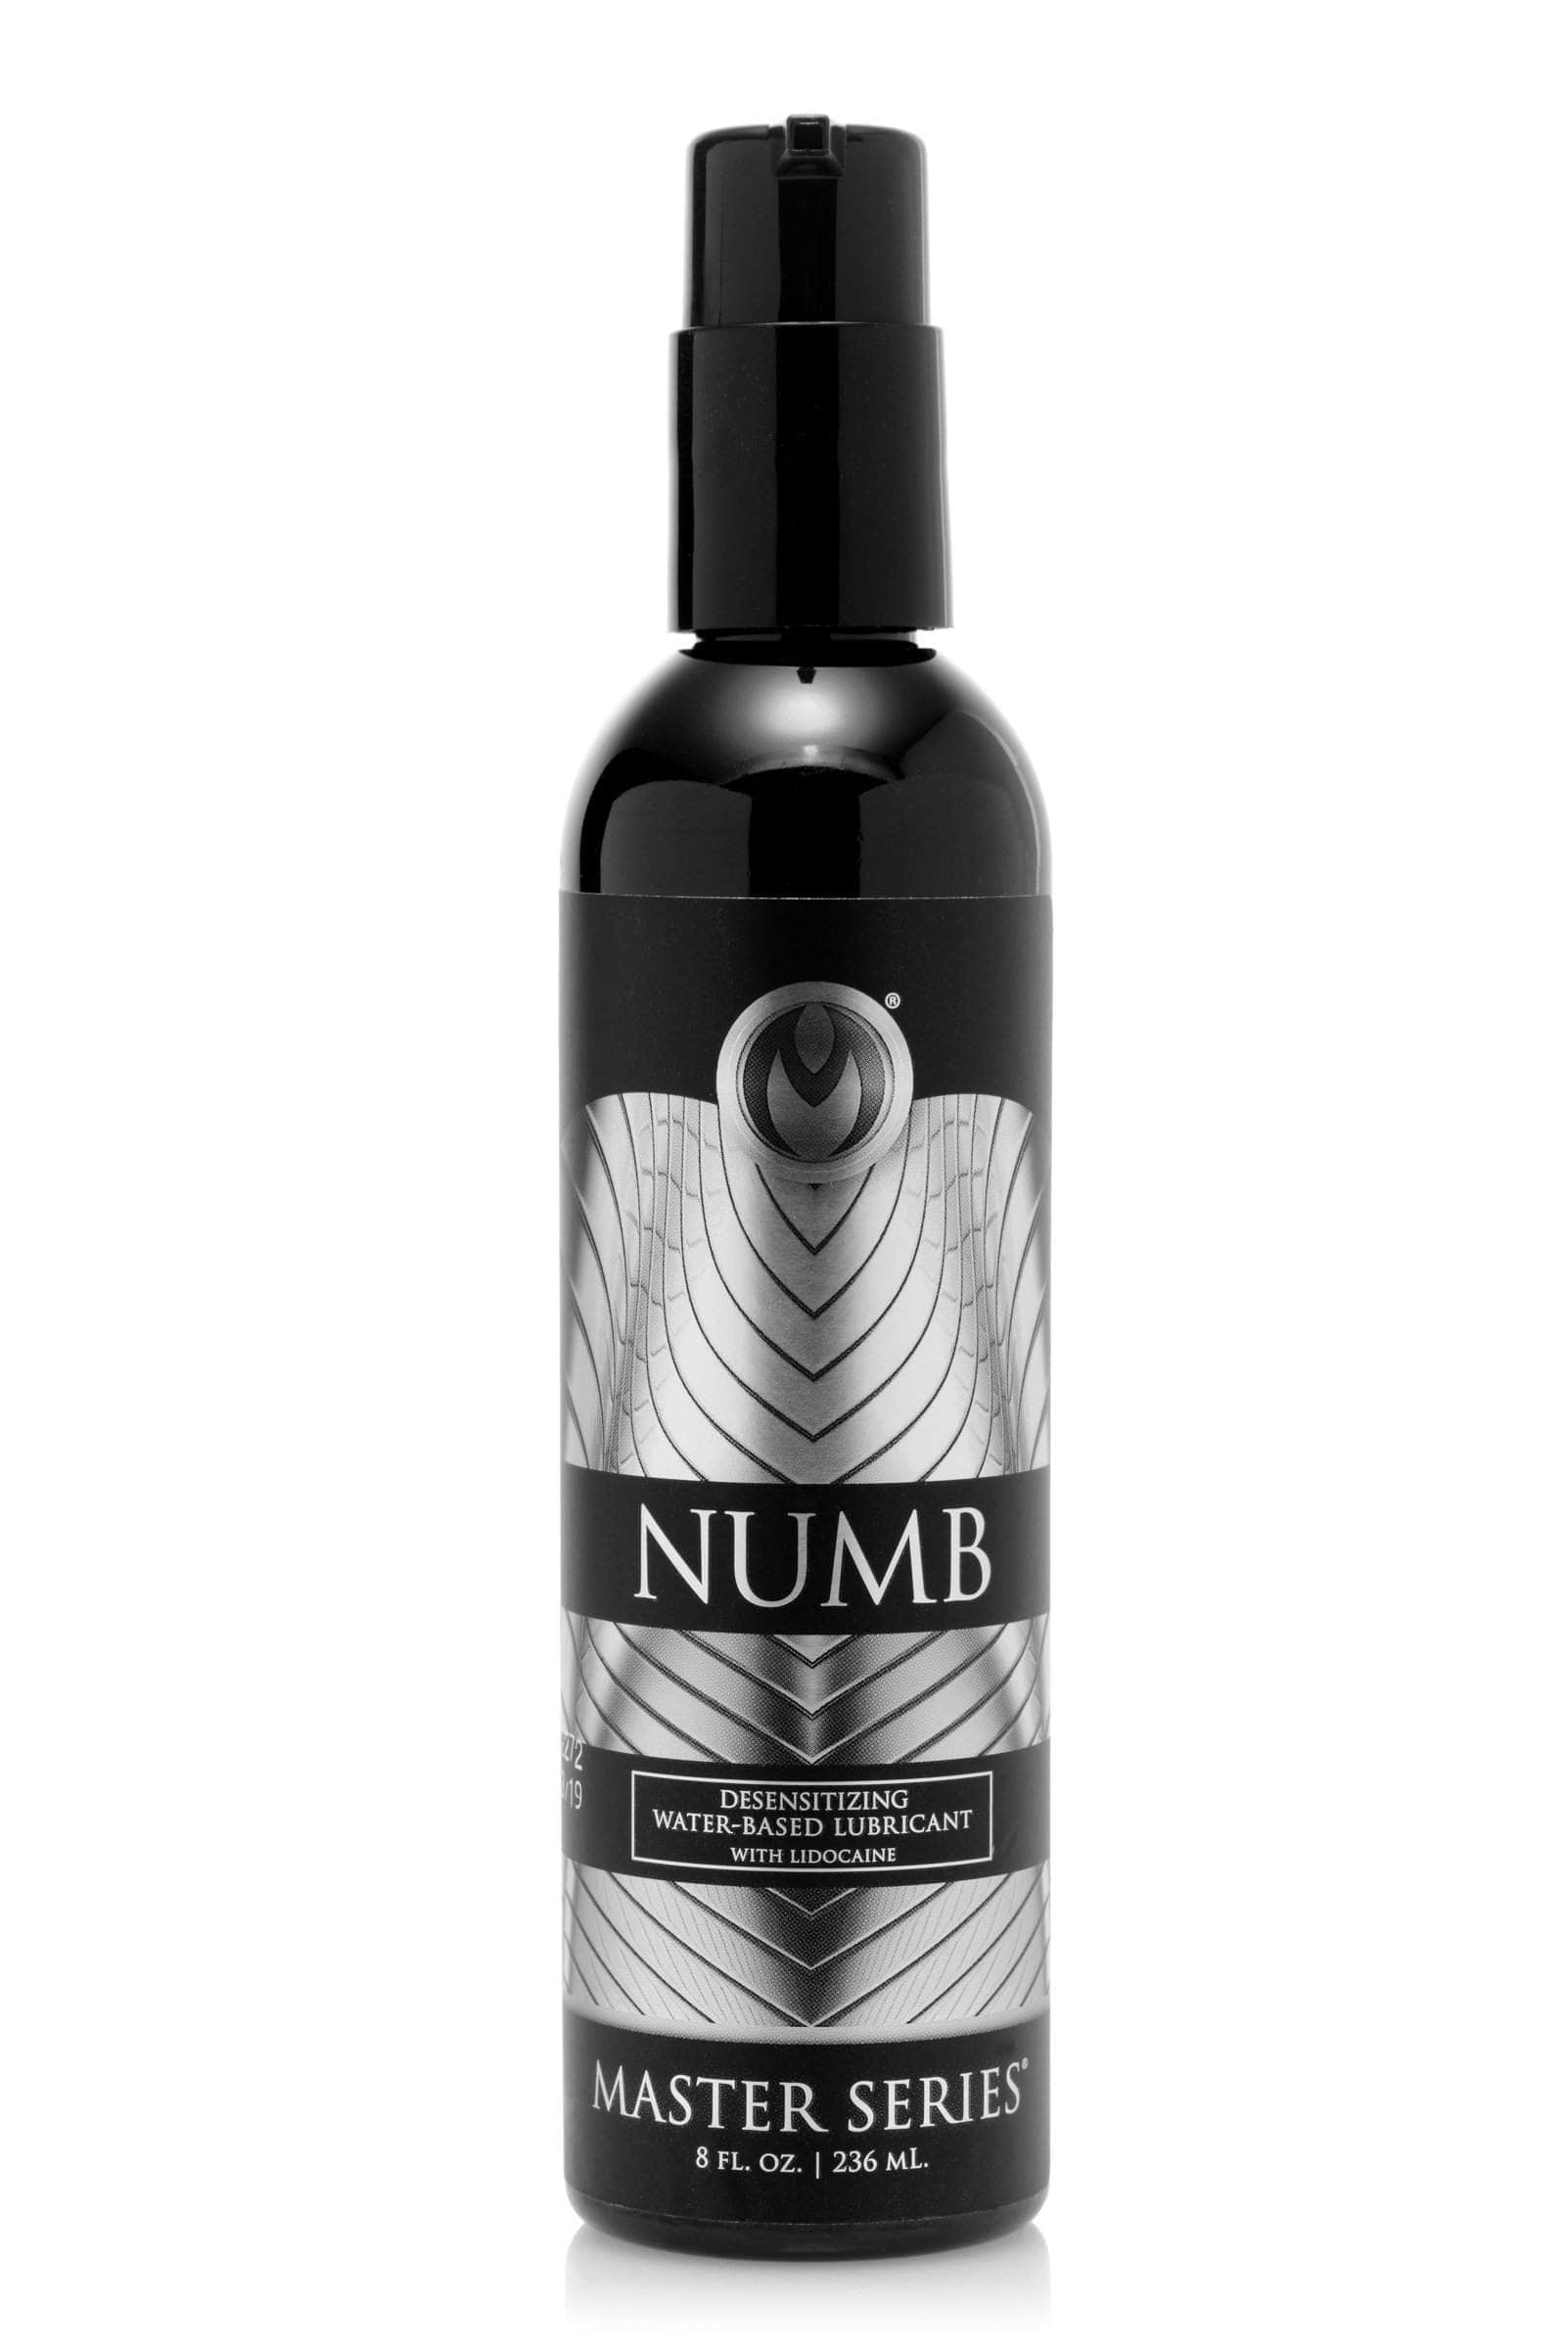 Numb Desensitizing Water Based Lubricant With Lidocaine - 8 Oz